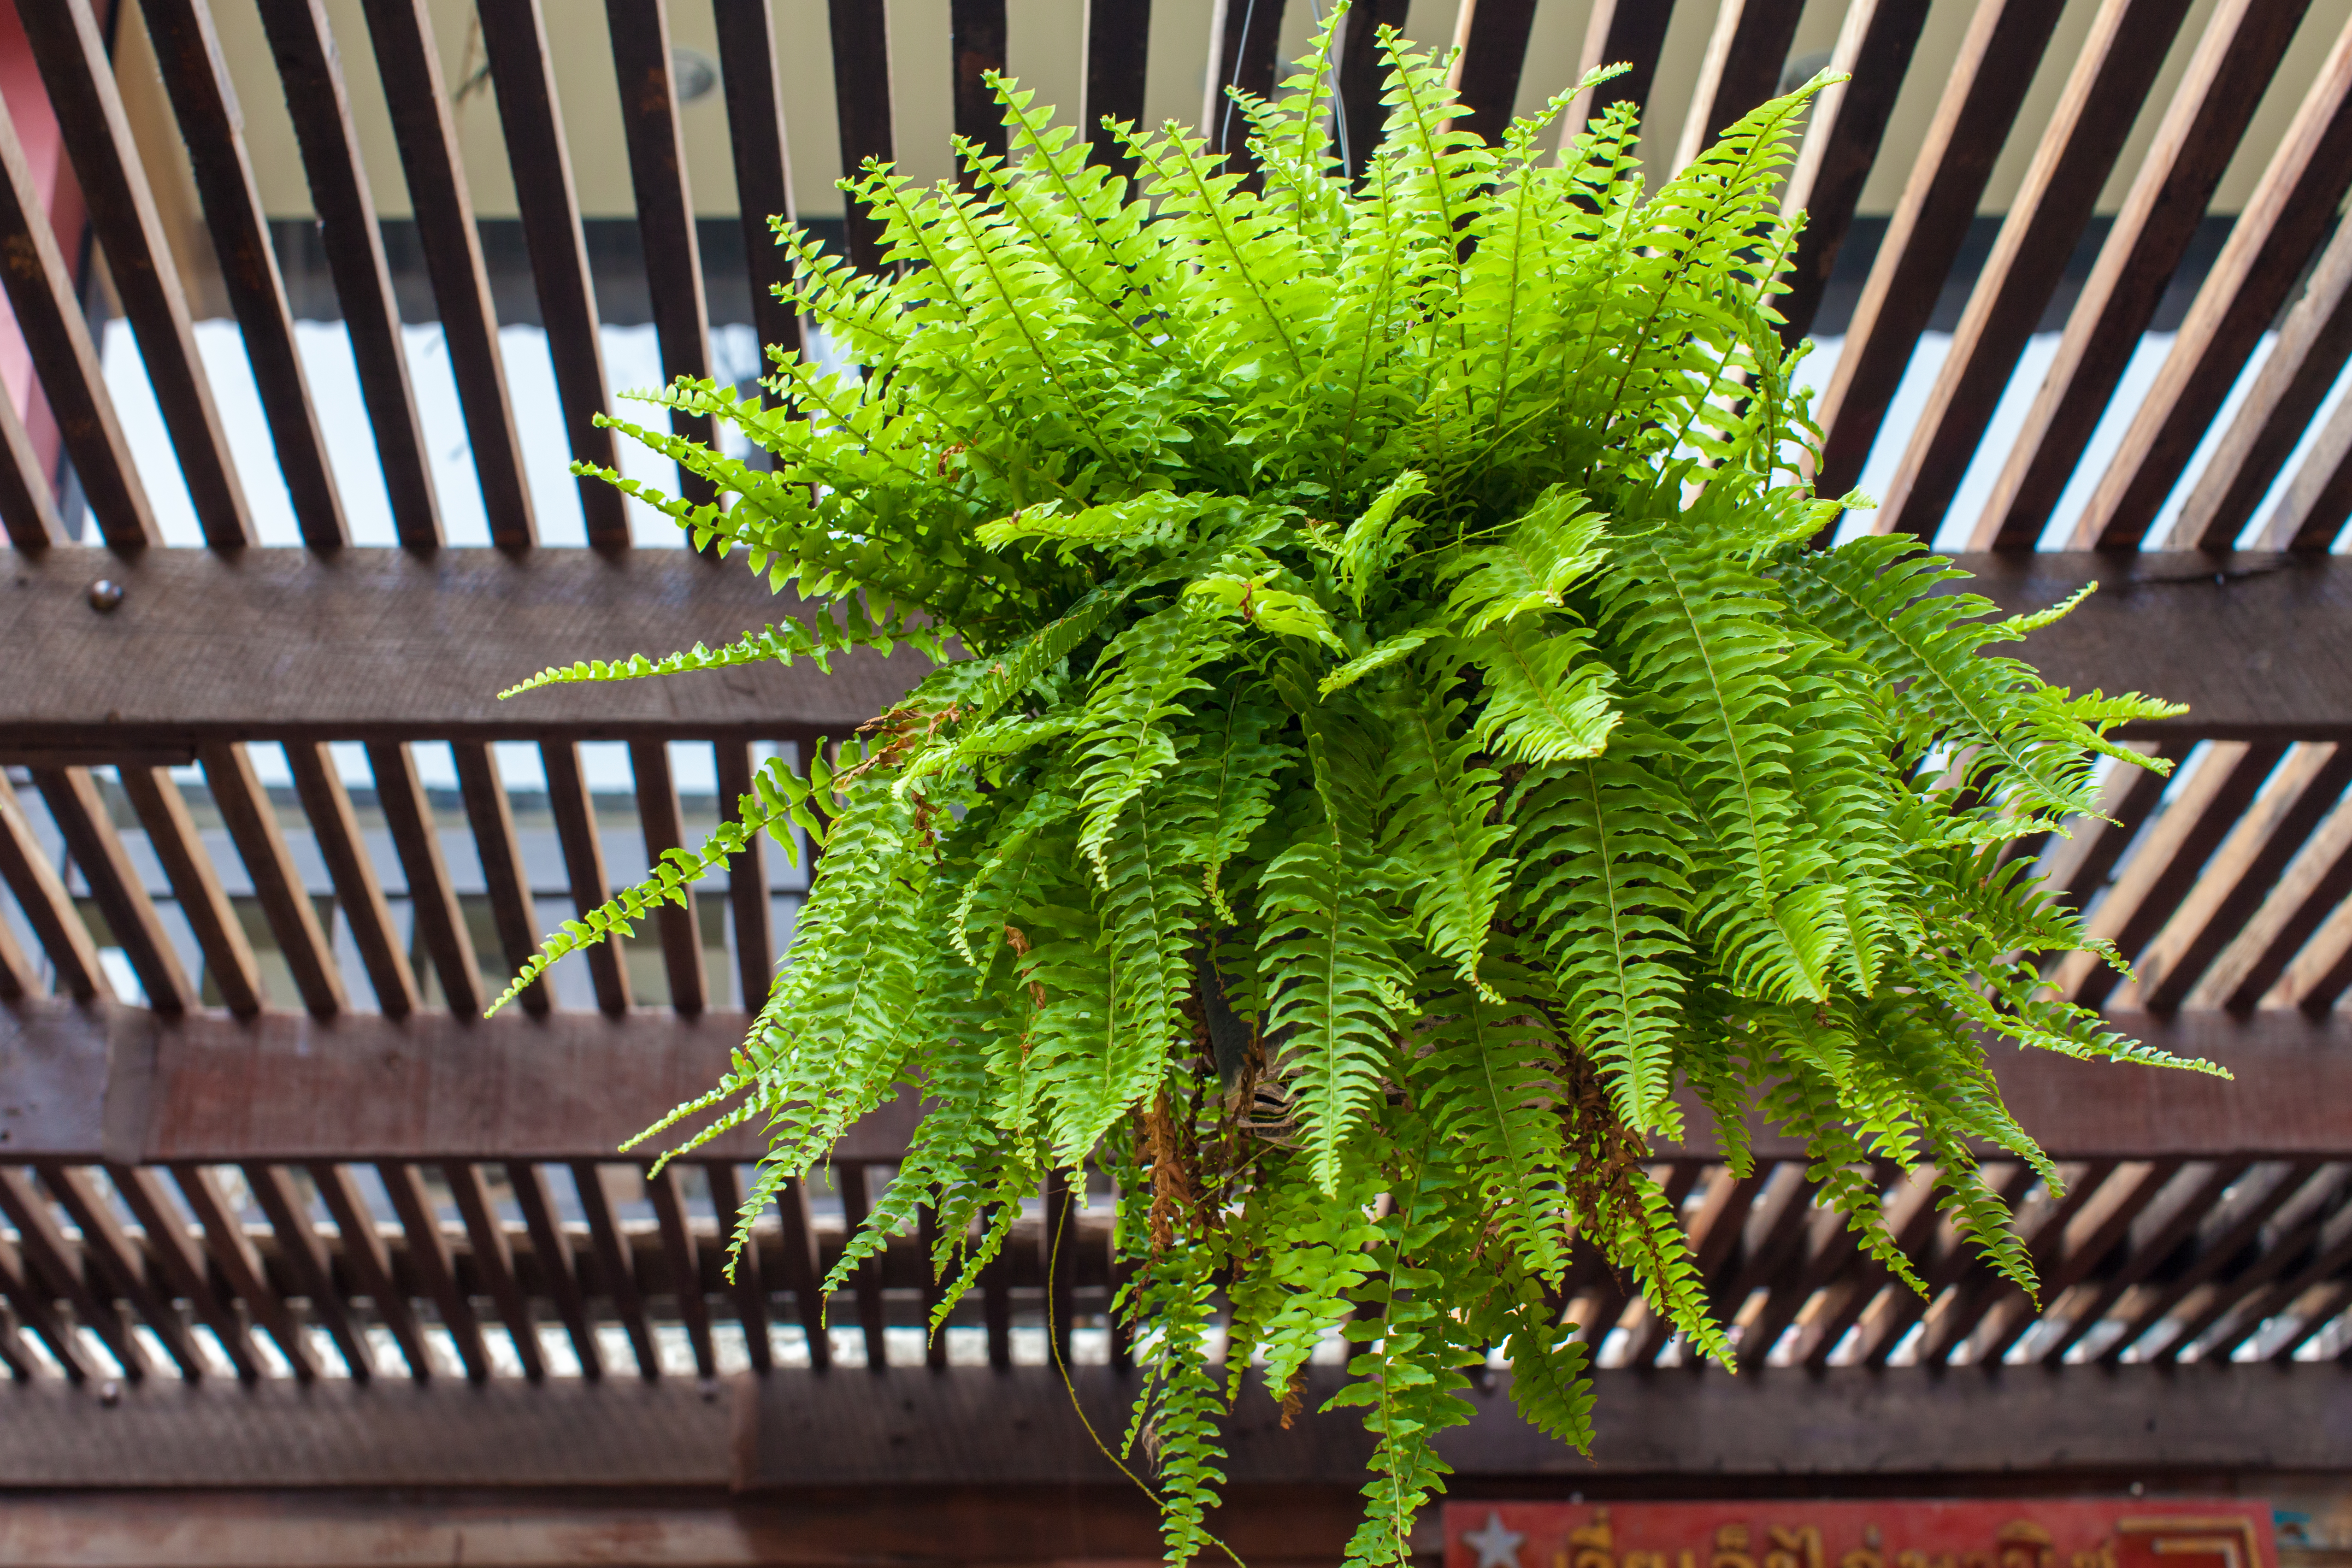 How to Care for Ferns in Hanging Pots | Home Guides | SF Gate Rainbow Fern House Plant on rainbow eucalyptus plant, rainbow hibiscus plant, rainbow rose plant, rainbow iris plant, rainbow cactus plant, rainbow bleeding heart plant, rainbow bamboo plant, rainbow fern care, rainbow orchid plant, rainbow jasmine plant, rainbow leaf plant, rainbow coleus plant, rainbow flower plant, red spiky plant, indian tobacco plant, rainbow moss, rainbow chrysanthemum plant, rainbow strawberry plant, rainbow hyacinth plant, rainbow evergreen plant,